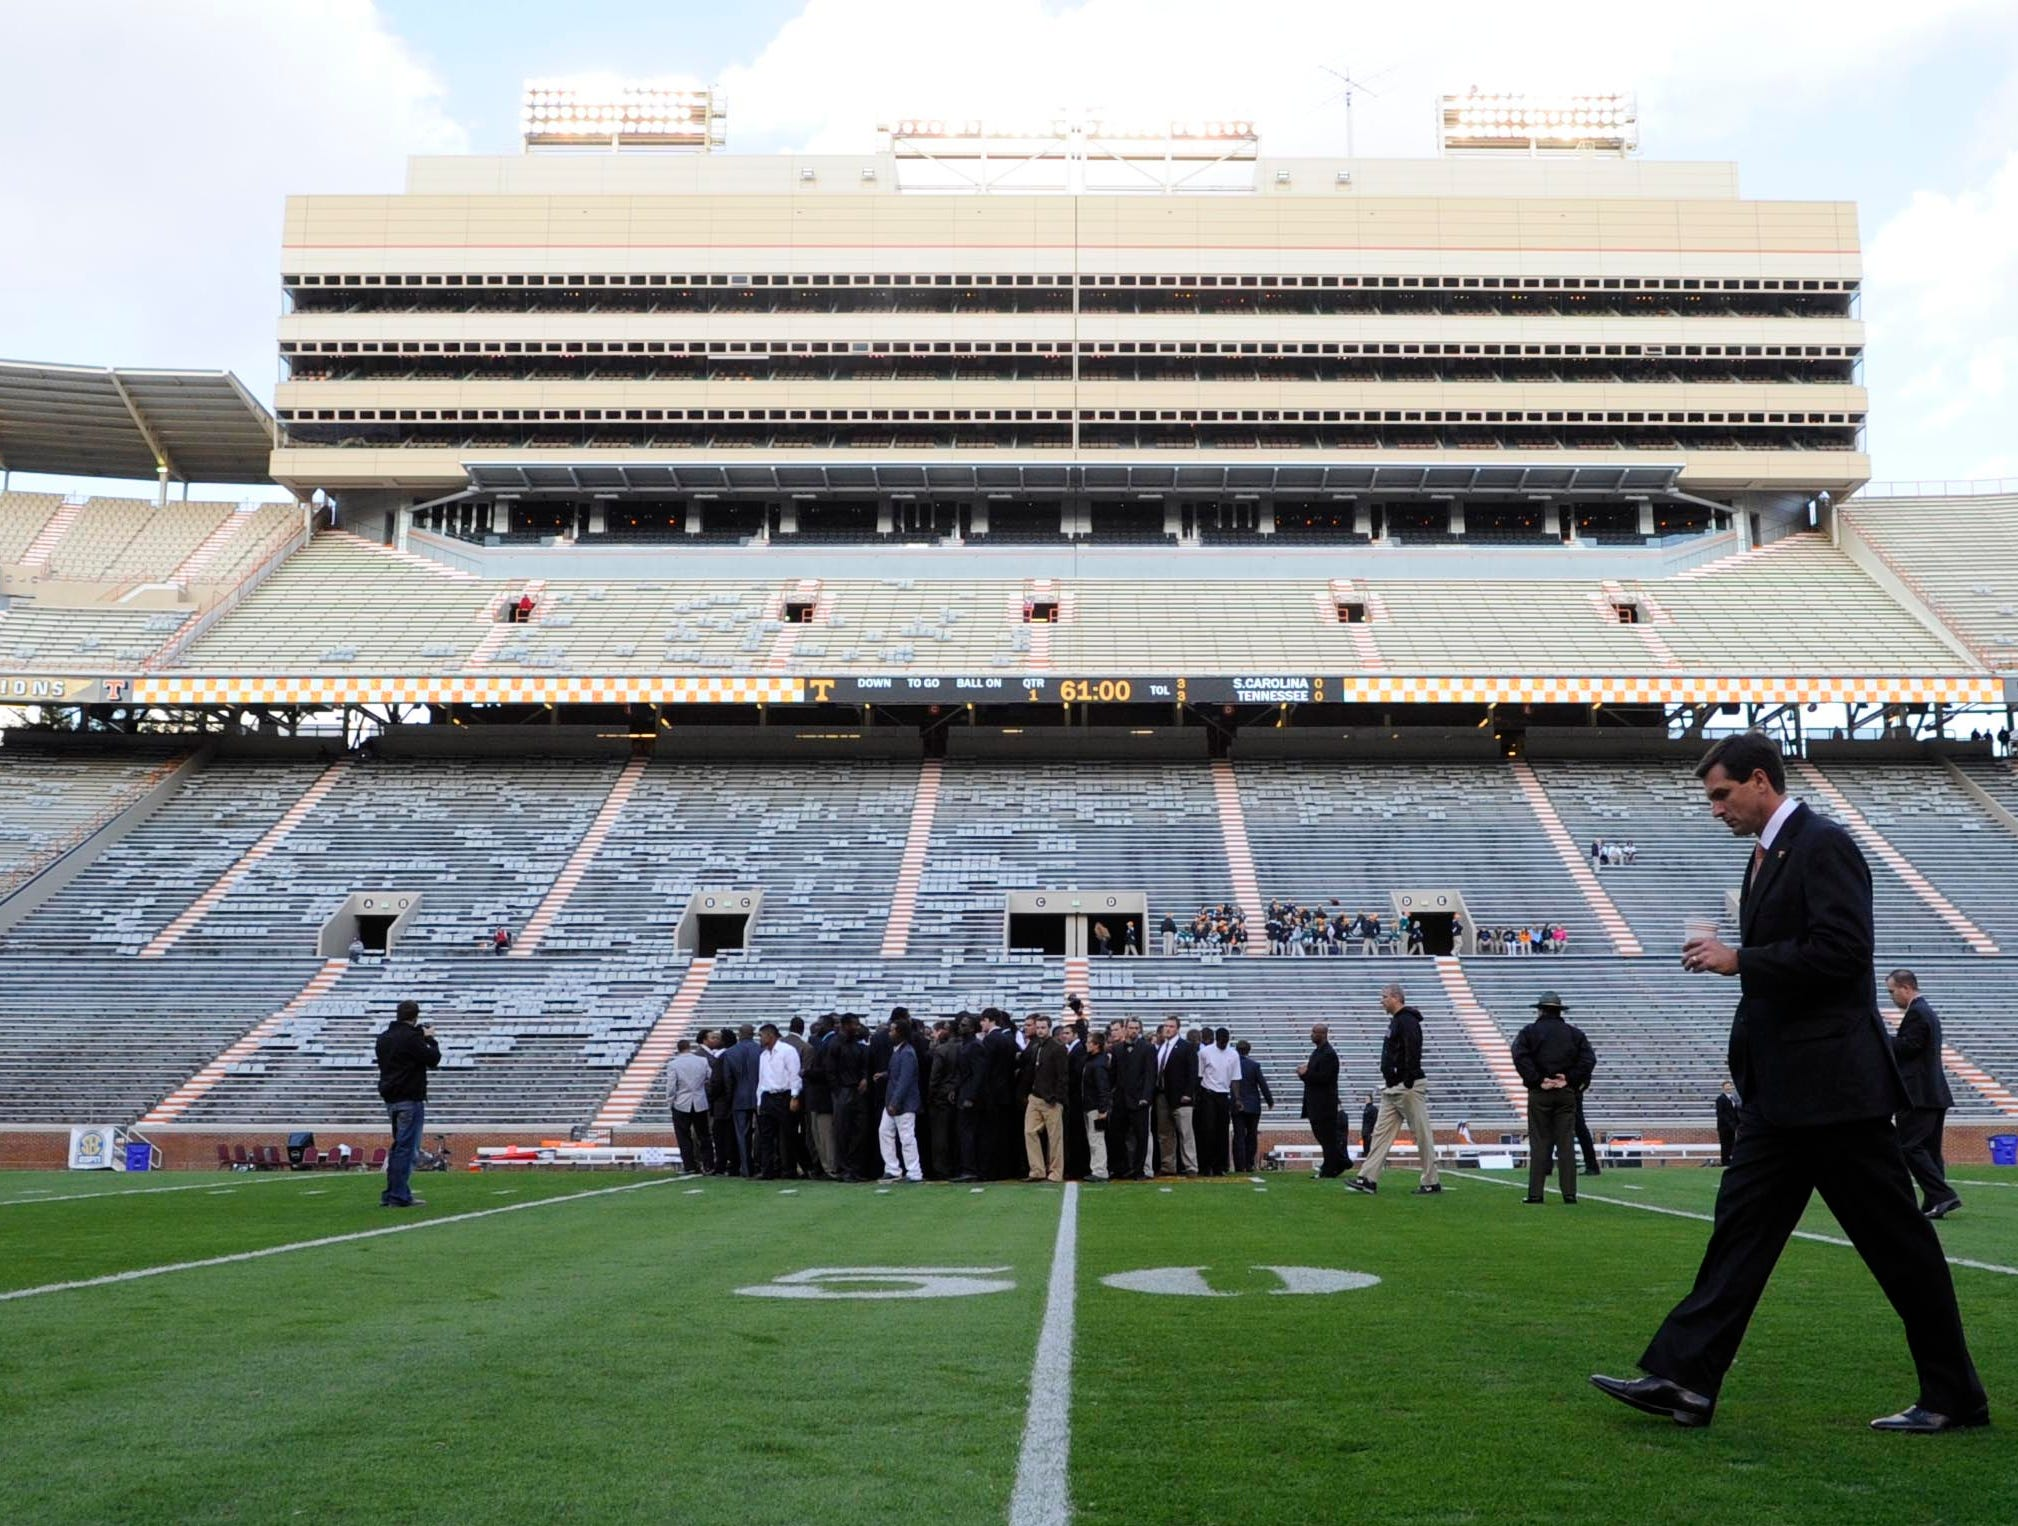 Tennessee head coach Derek Dooley, right, surveys the field before the game against South Carolina at Neyland Stadium on Saturday, Oct. 29, 2011.